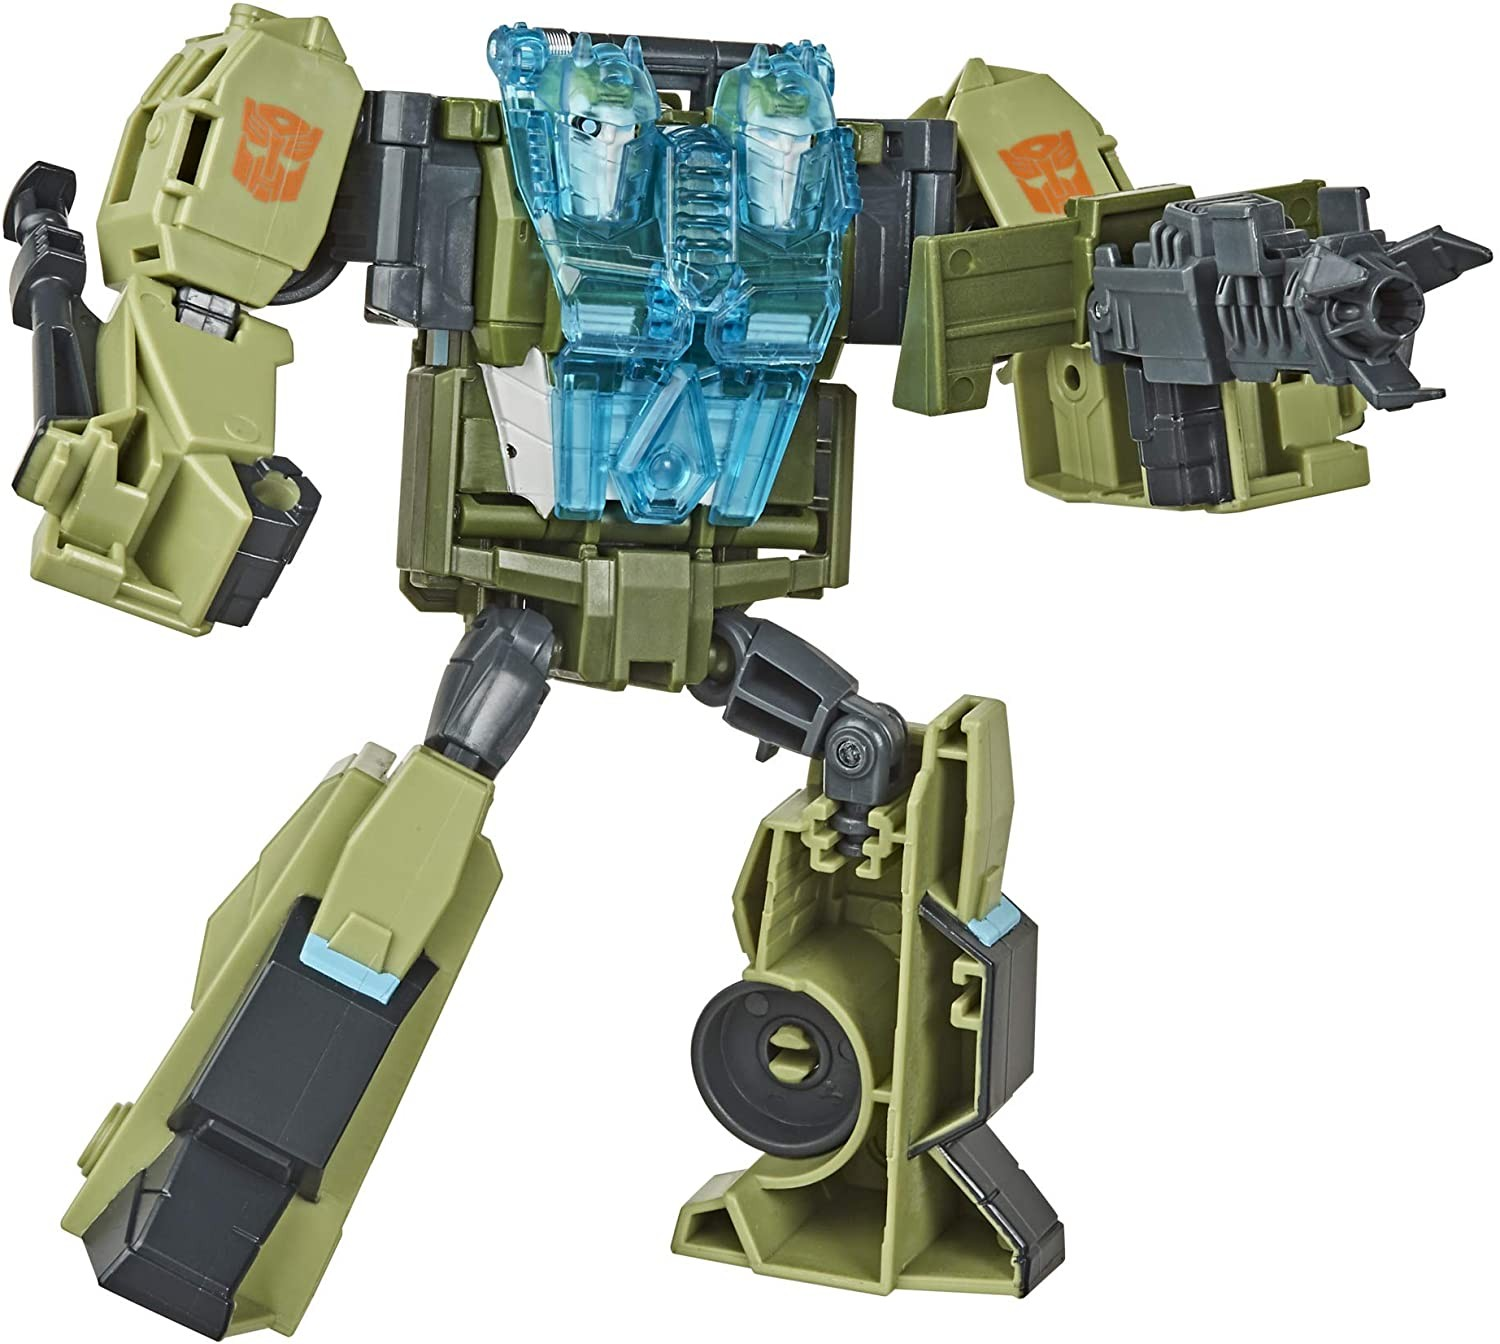 Transformers News: Transformers Cyberverse Rack n' Ruin Available on Amazon